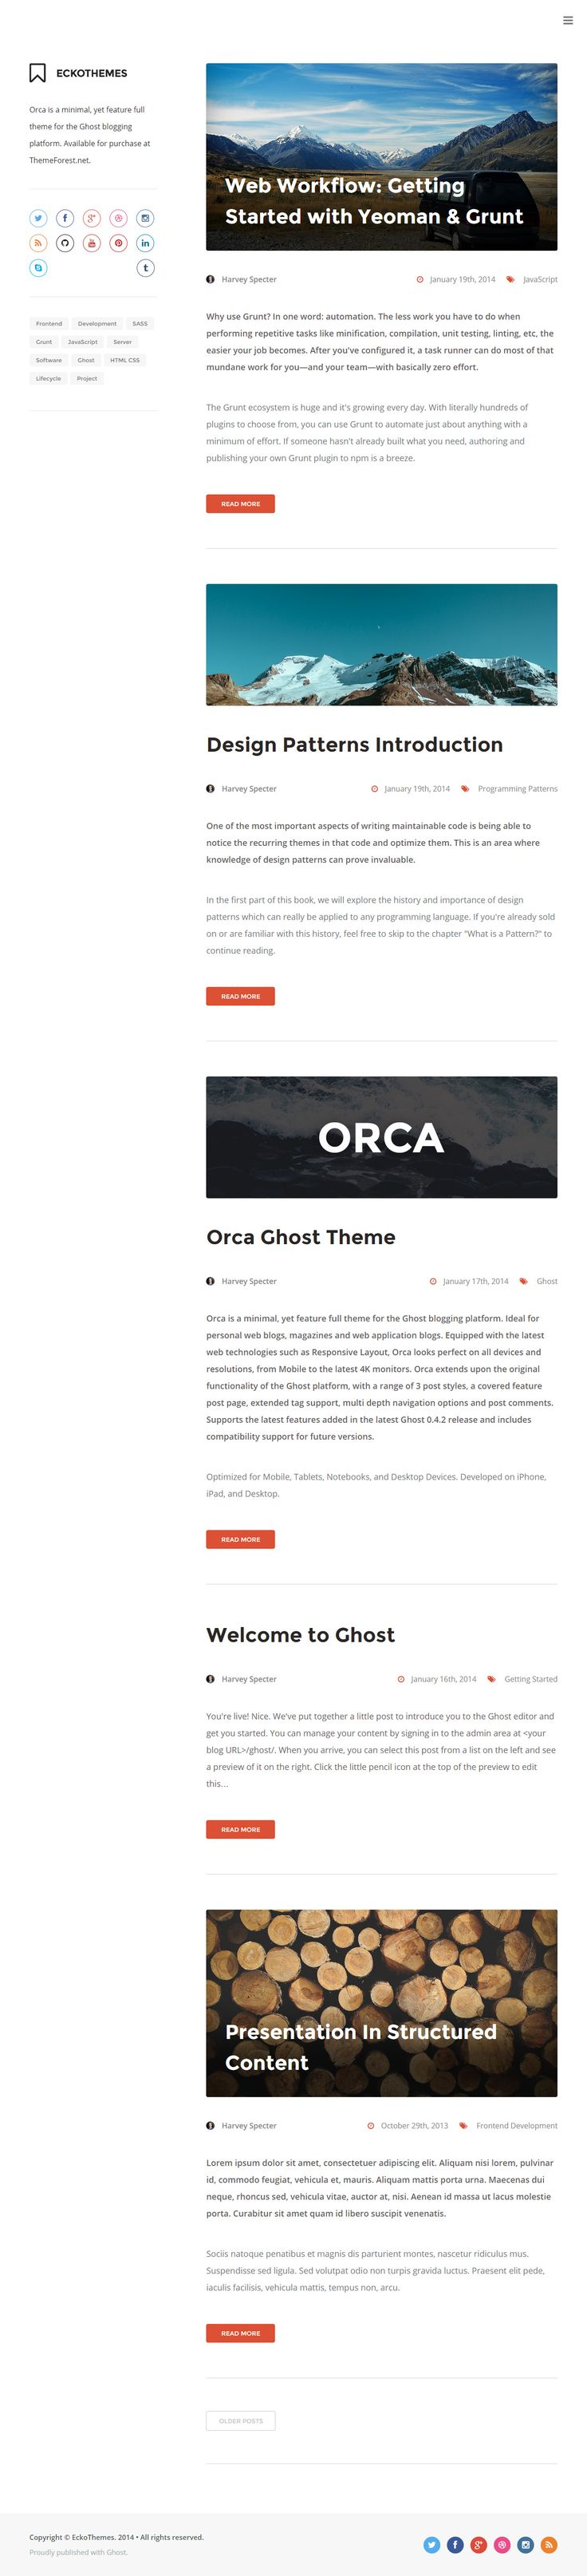 Orca is Premium full Responsive Ghost Blog Theme. Retina Ready. Integrated Disqus Comments. Grunt Setup. Syntax Highlighting. http://www.responsivemiracle.com/cms/orca-premium-responsive-ghost-theme/